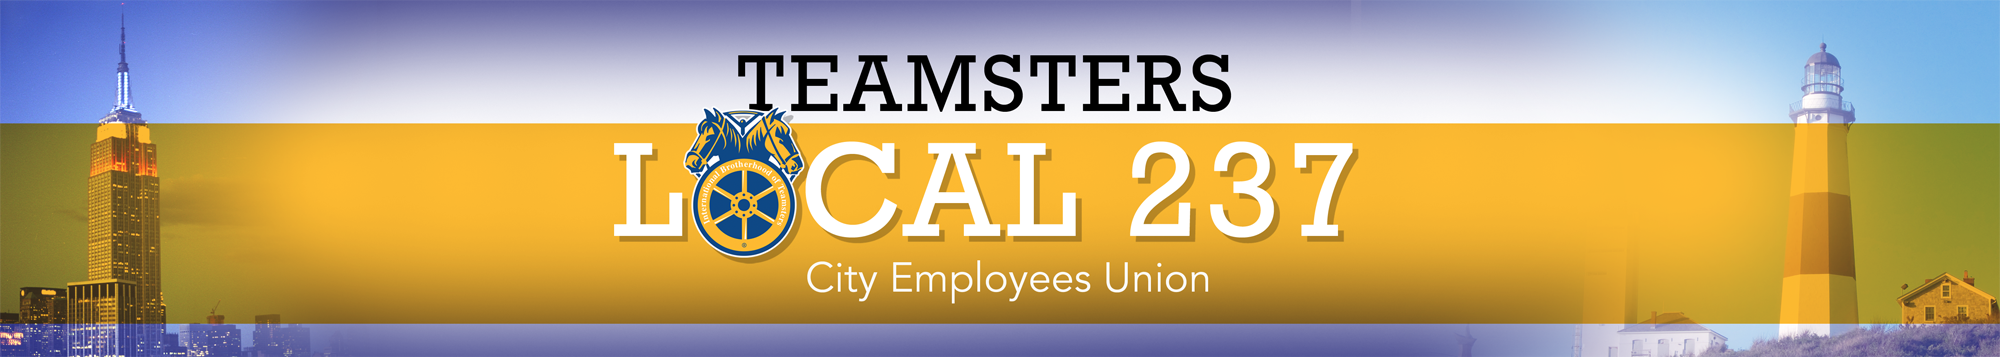 Teamsters Local 237